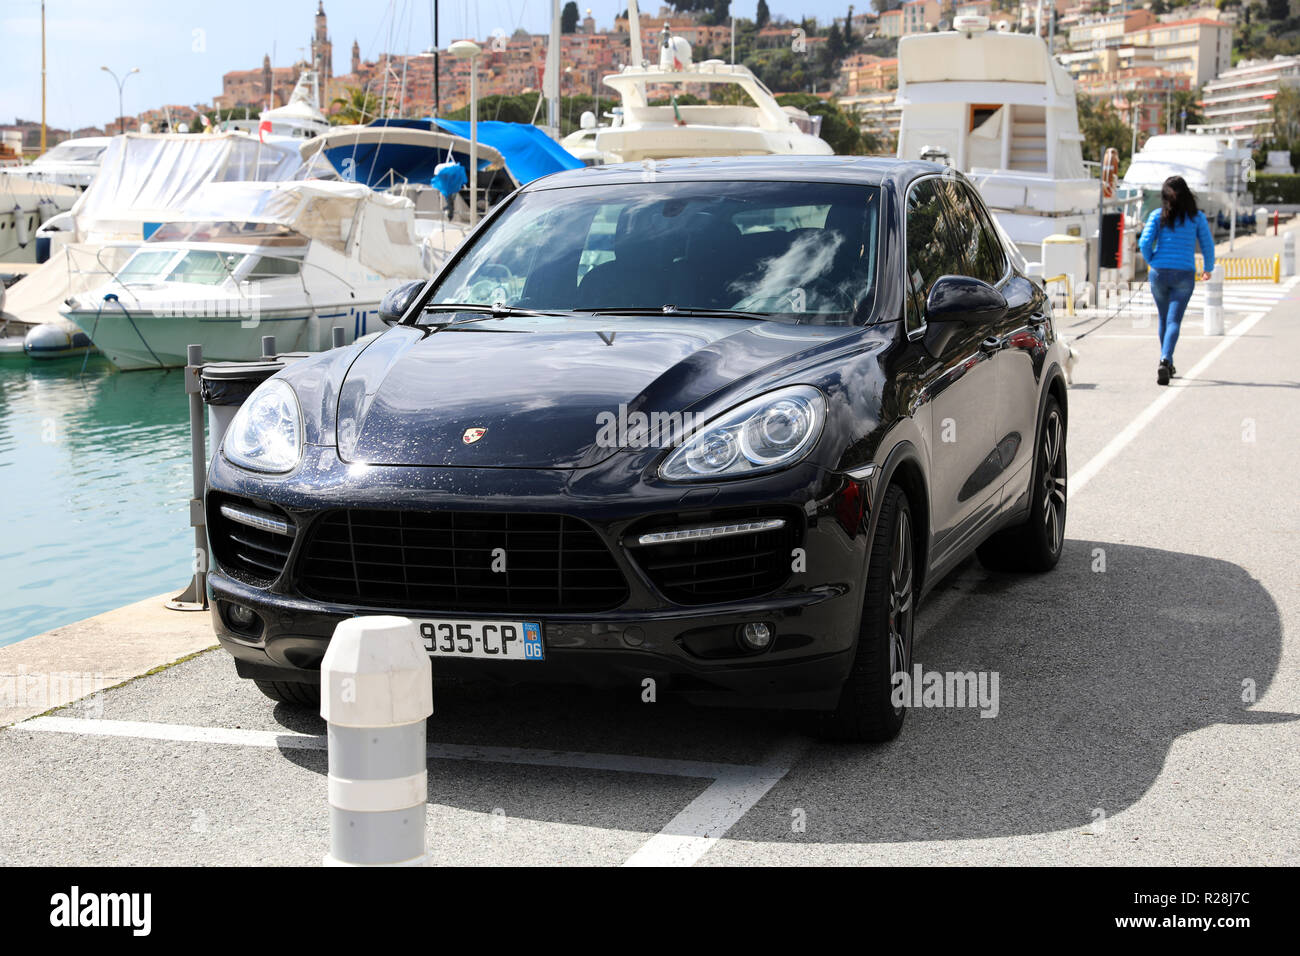 Menton France March 31 2018 Luxury Porsche Cayenne Turbo Suv Front View Parked On The Port Of Menton Garavan French Riviera Europe Stock Photo Alamy